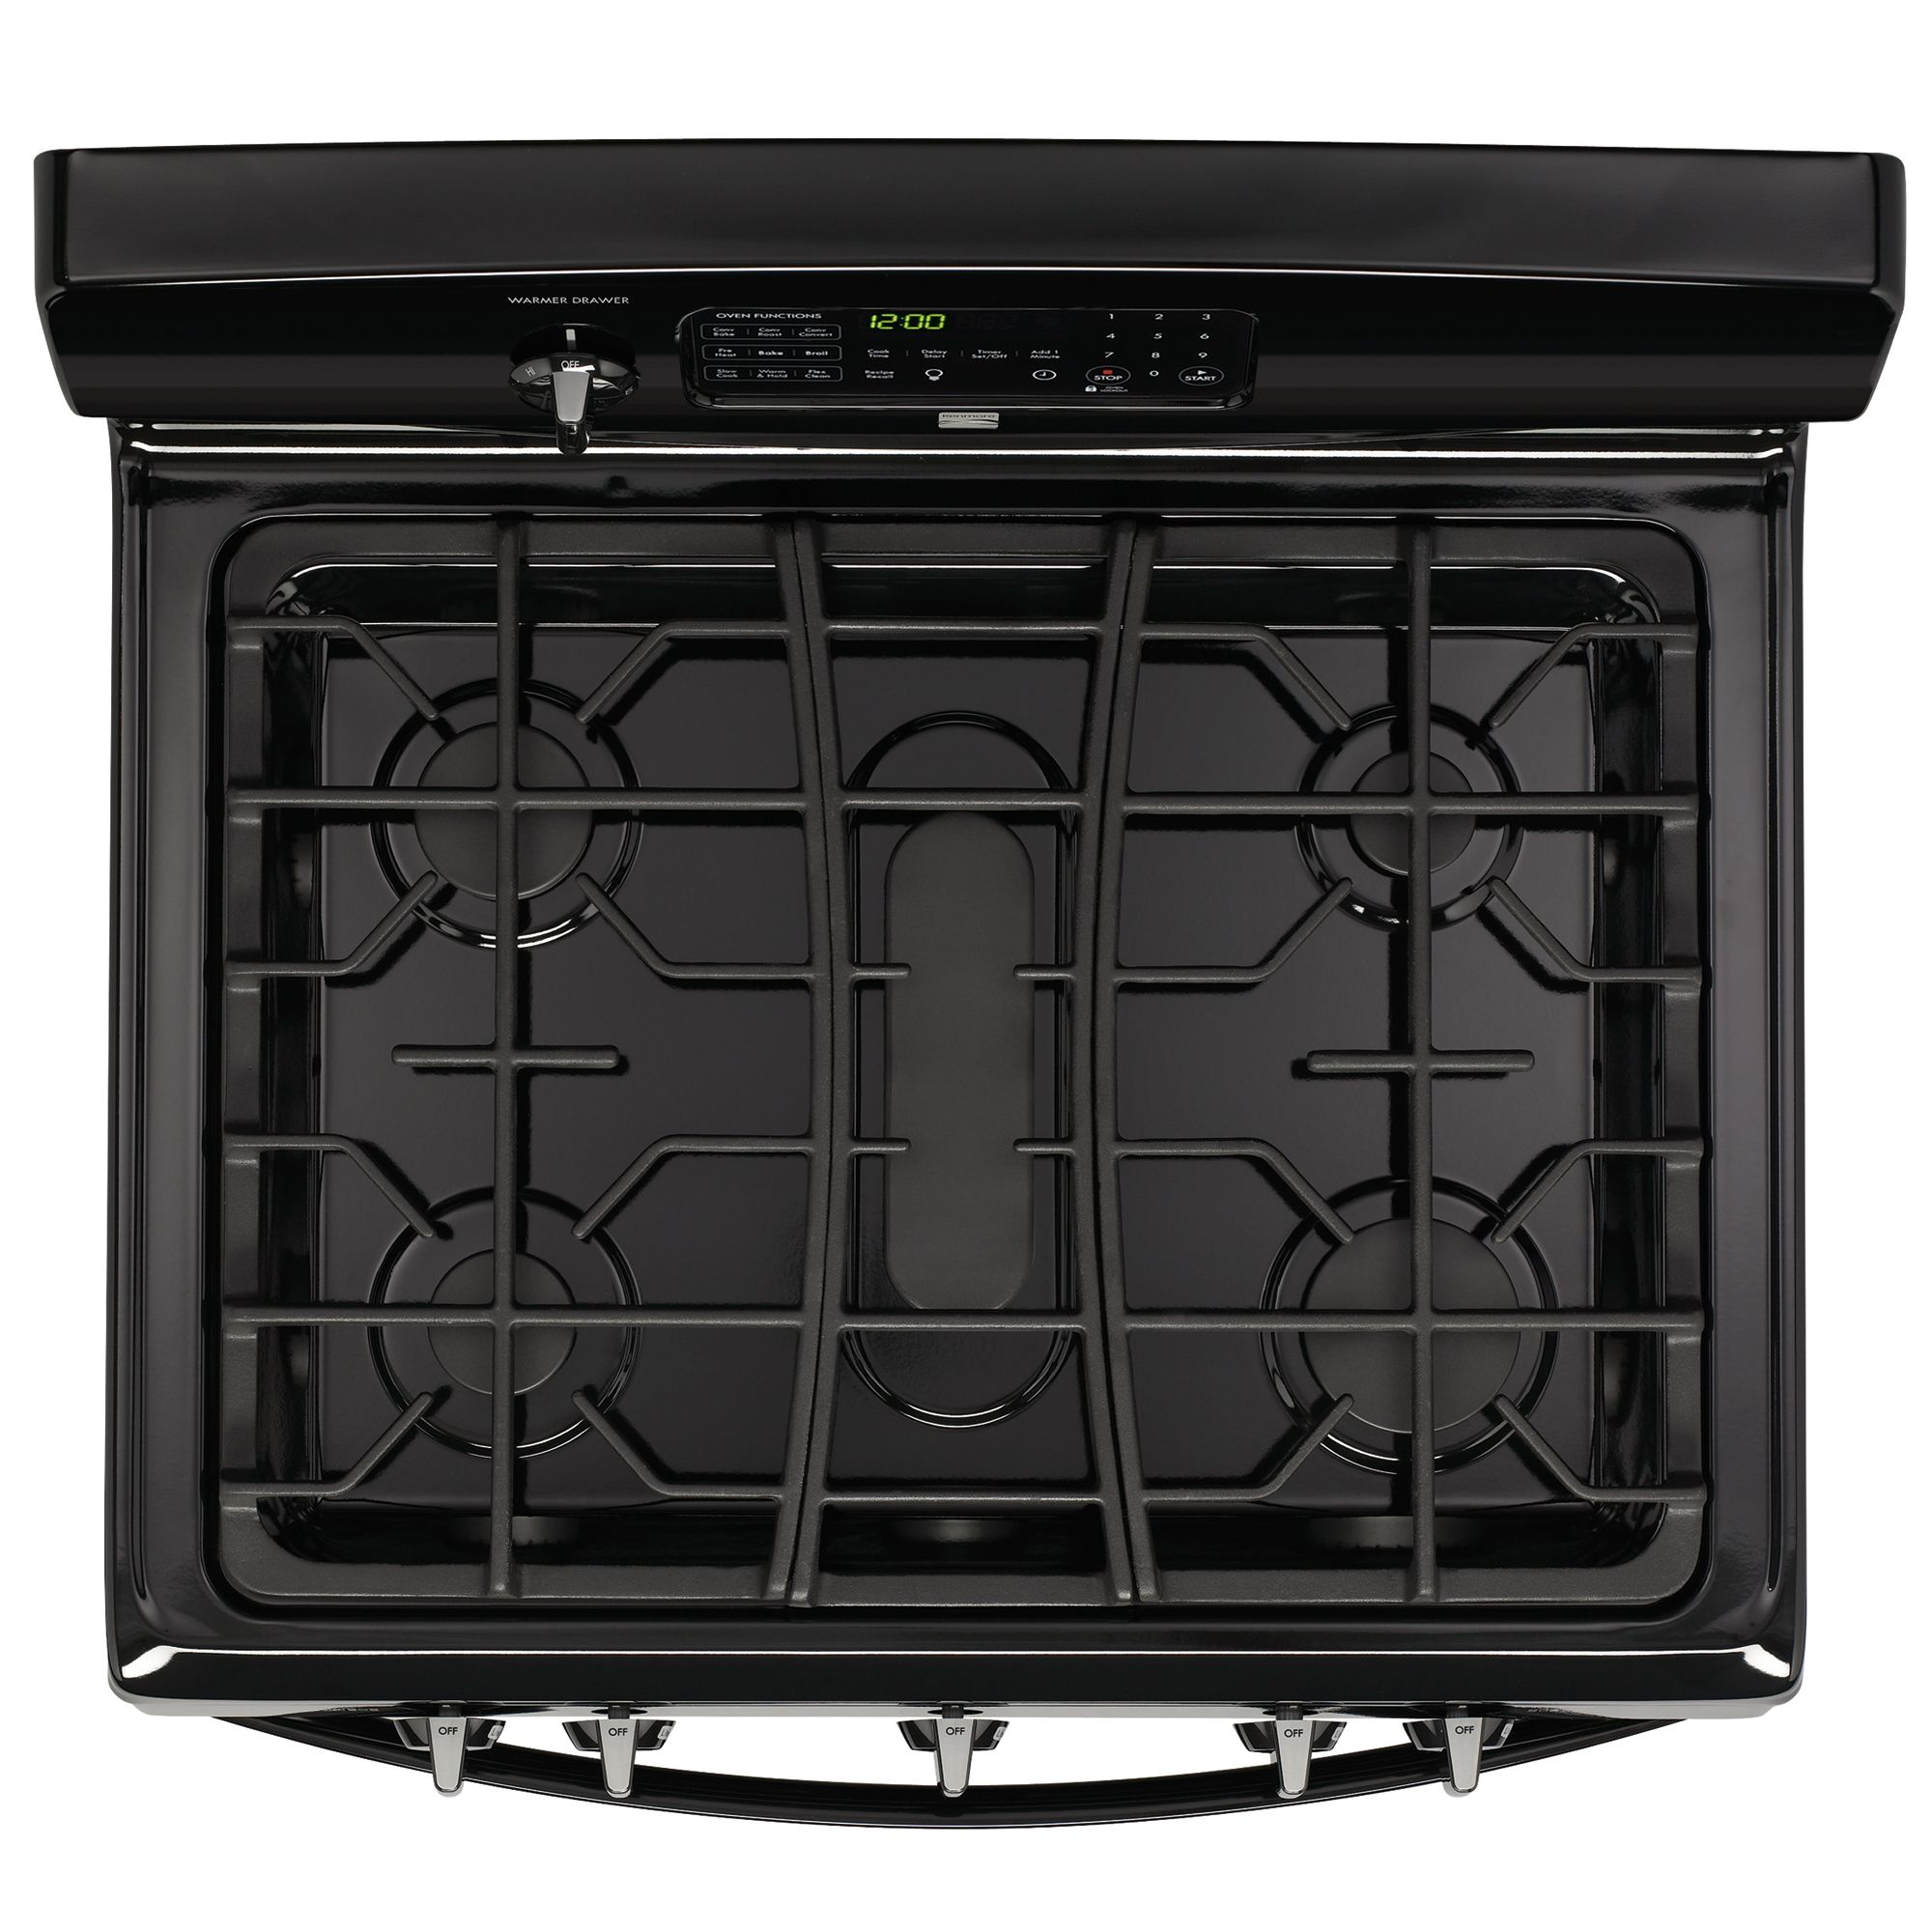 Kenmore 5.0 cu. ft. Freestanding Gas Range - Black